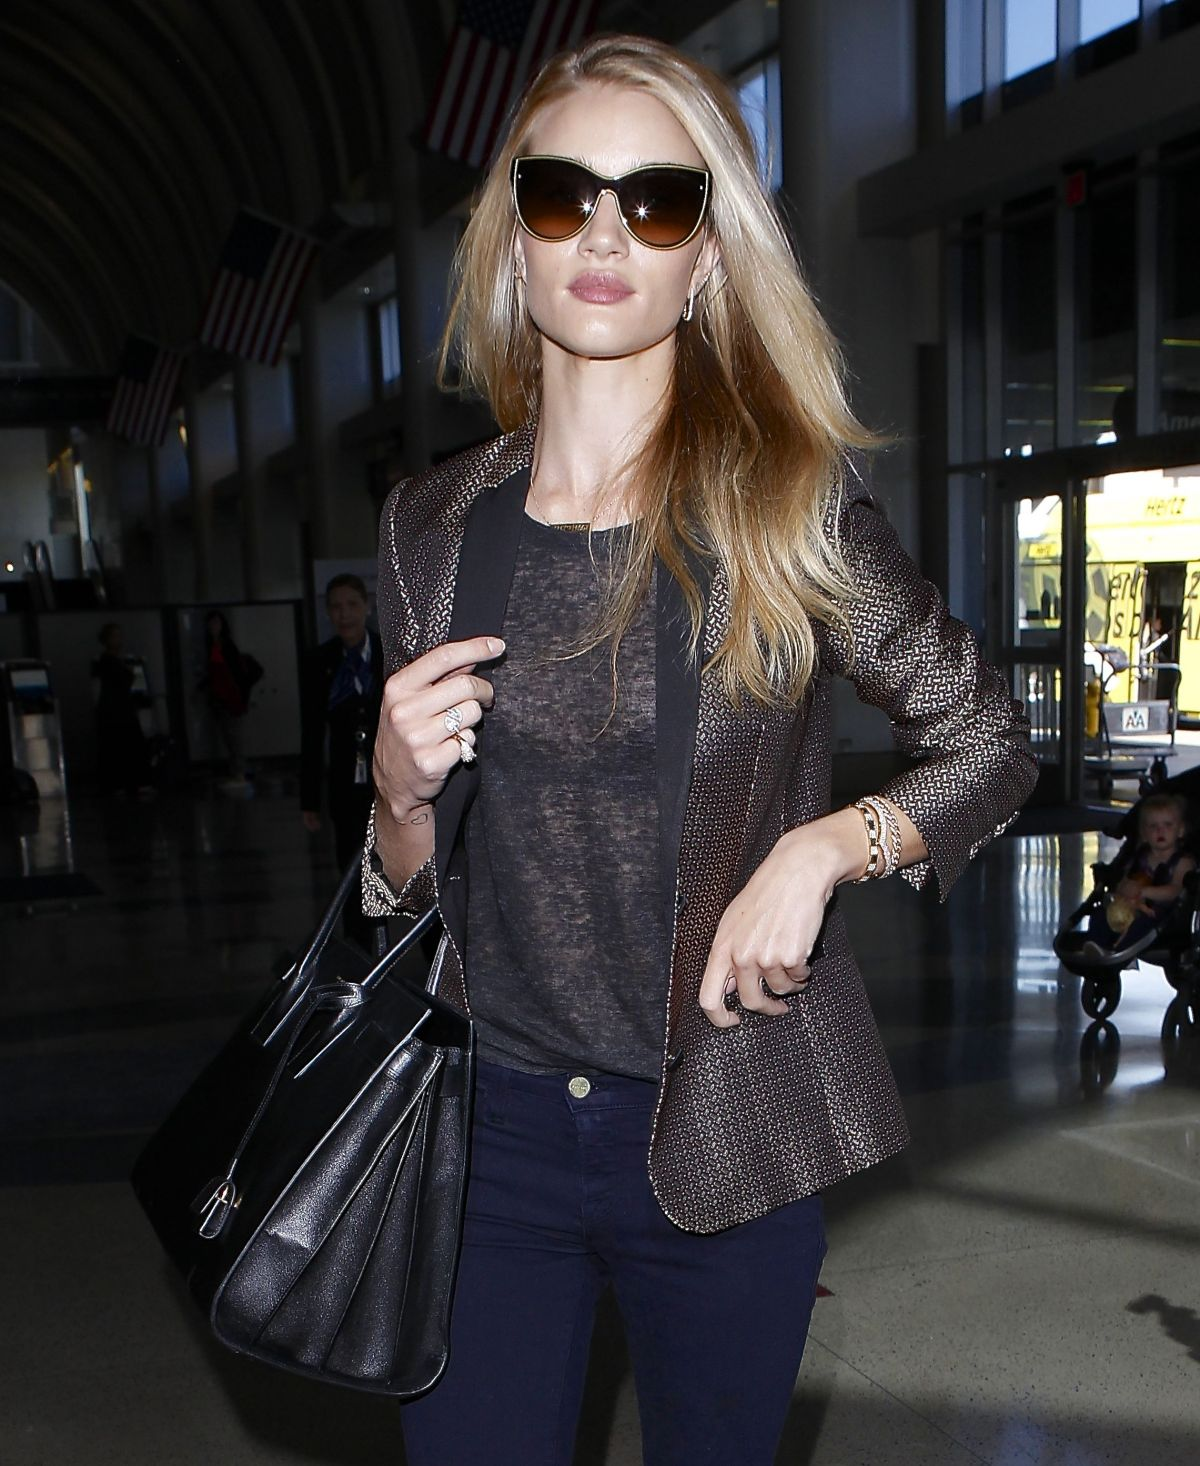 ROSIE HUNTINGTON-WHITELEY at LAX Airport 2404